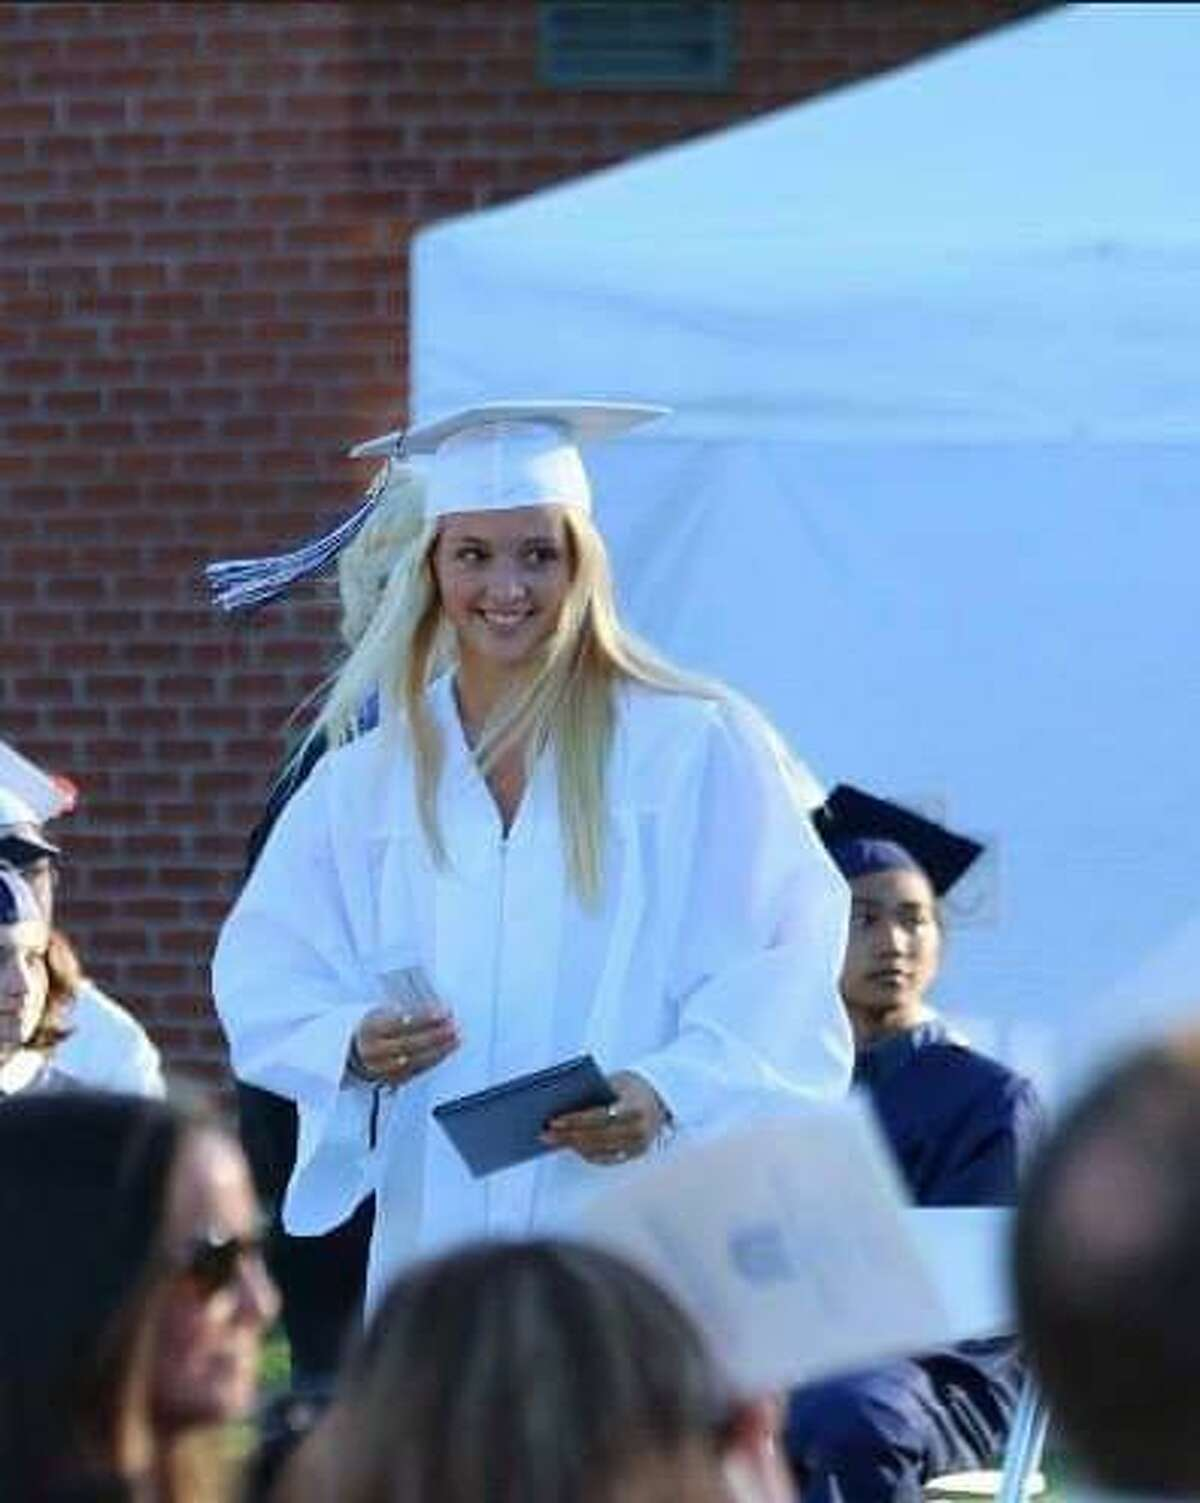 Pictured is Colleen Edwards, recent graduate of The Morgan School in Clinton.